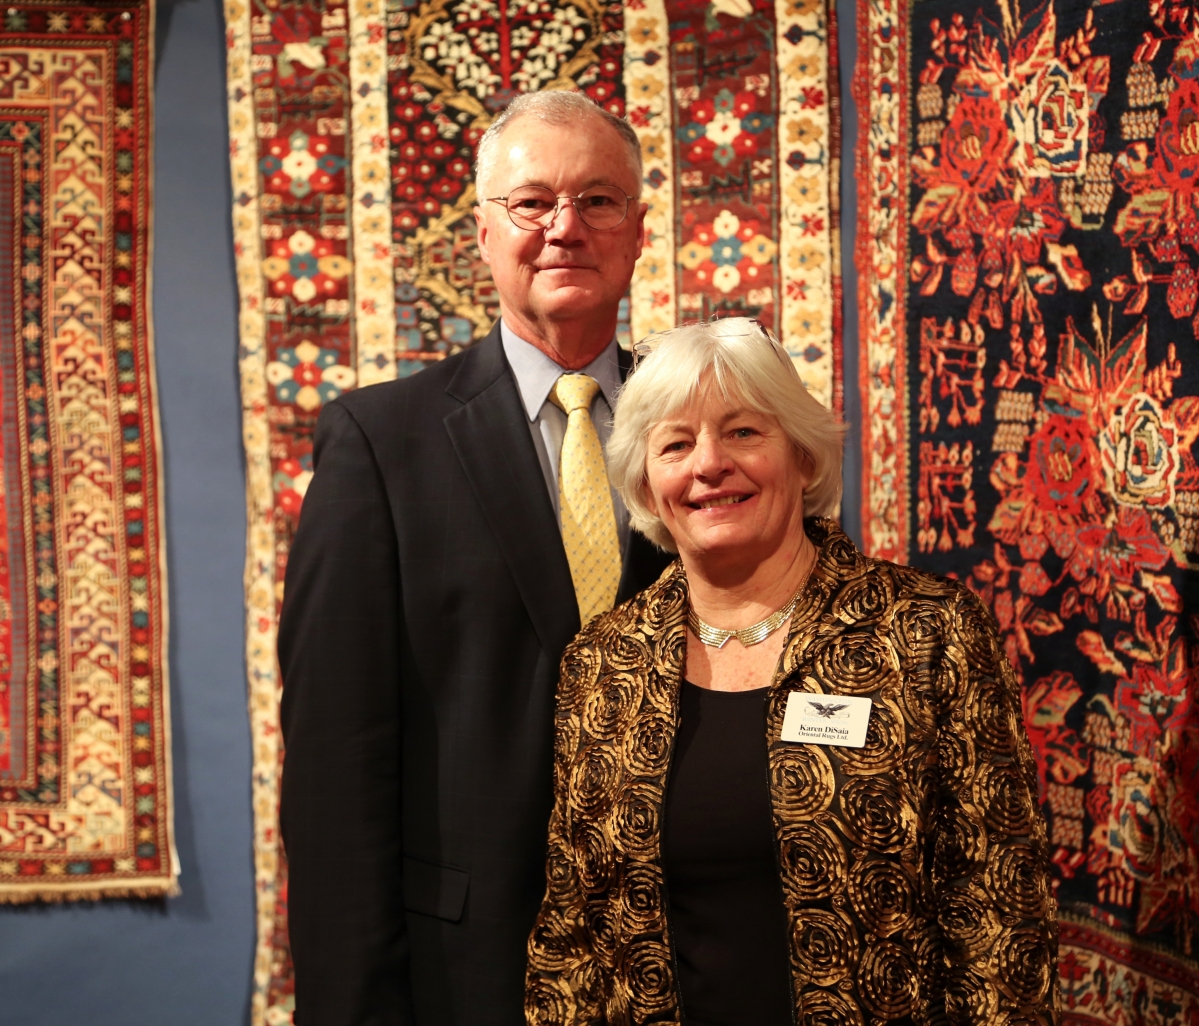 Ralph and Karen DiSaia, show managers, with their vibrant Oriental carpets in the background.